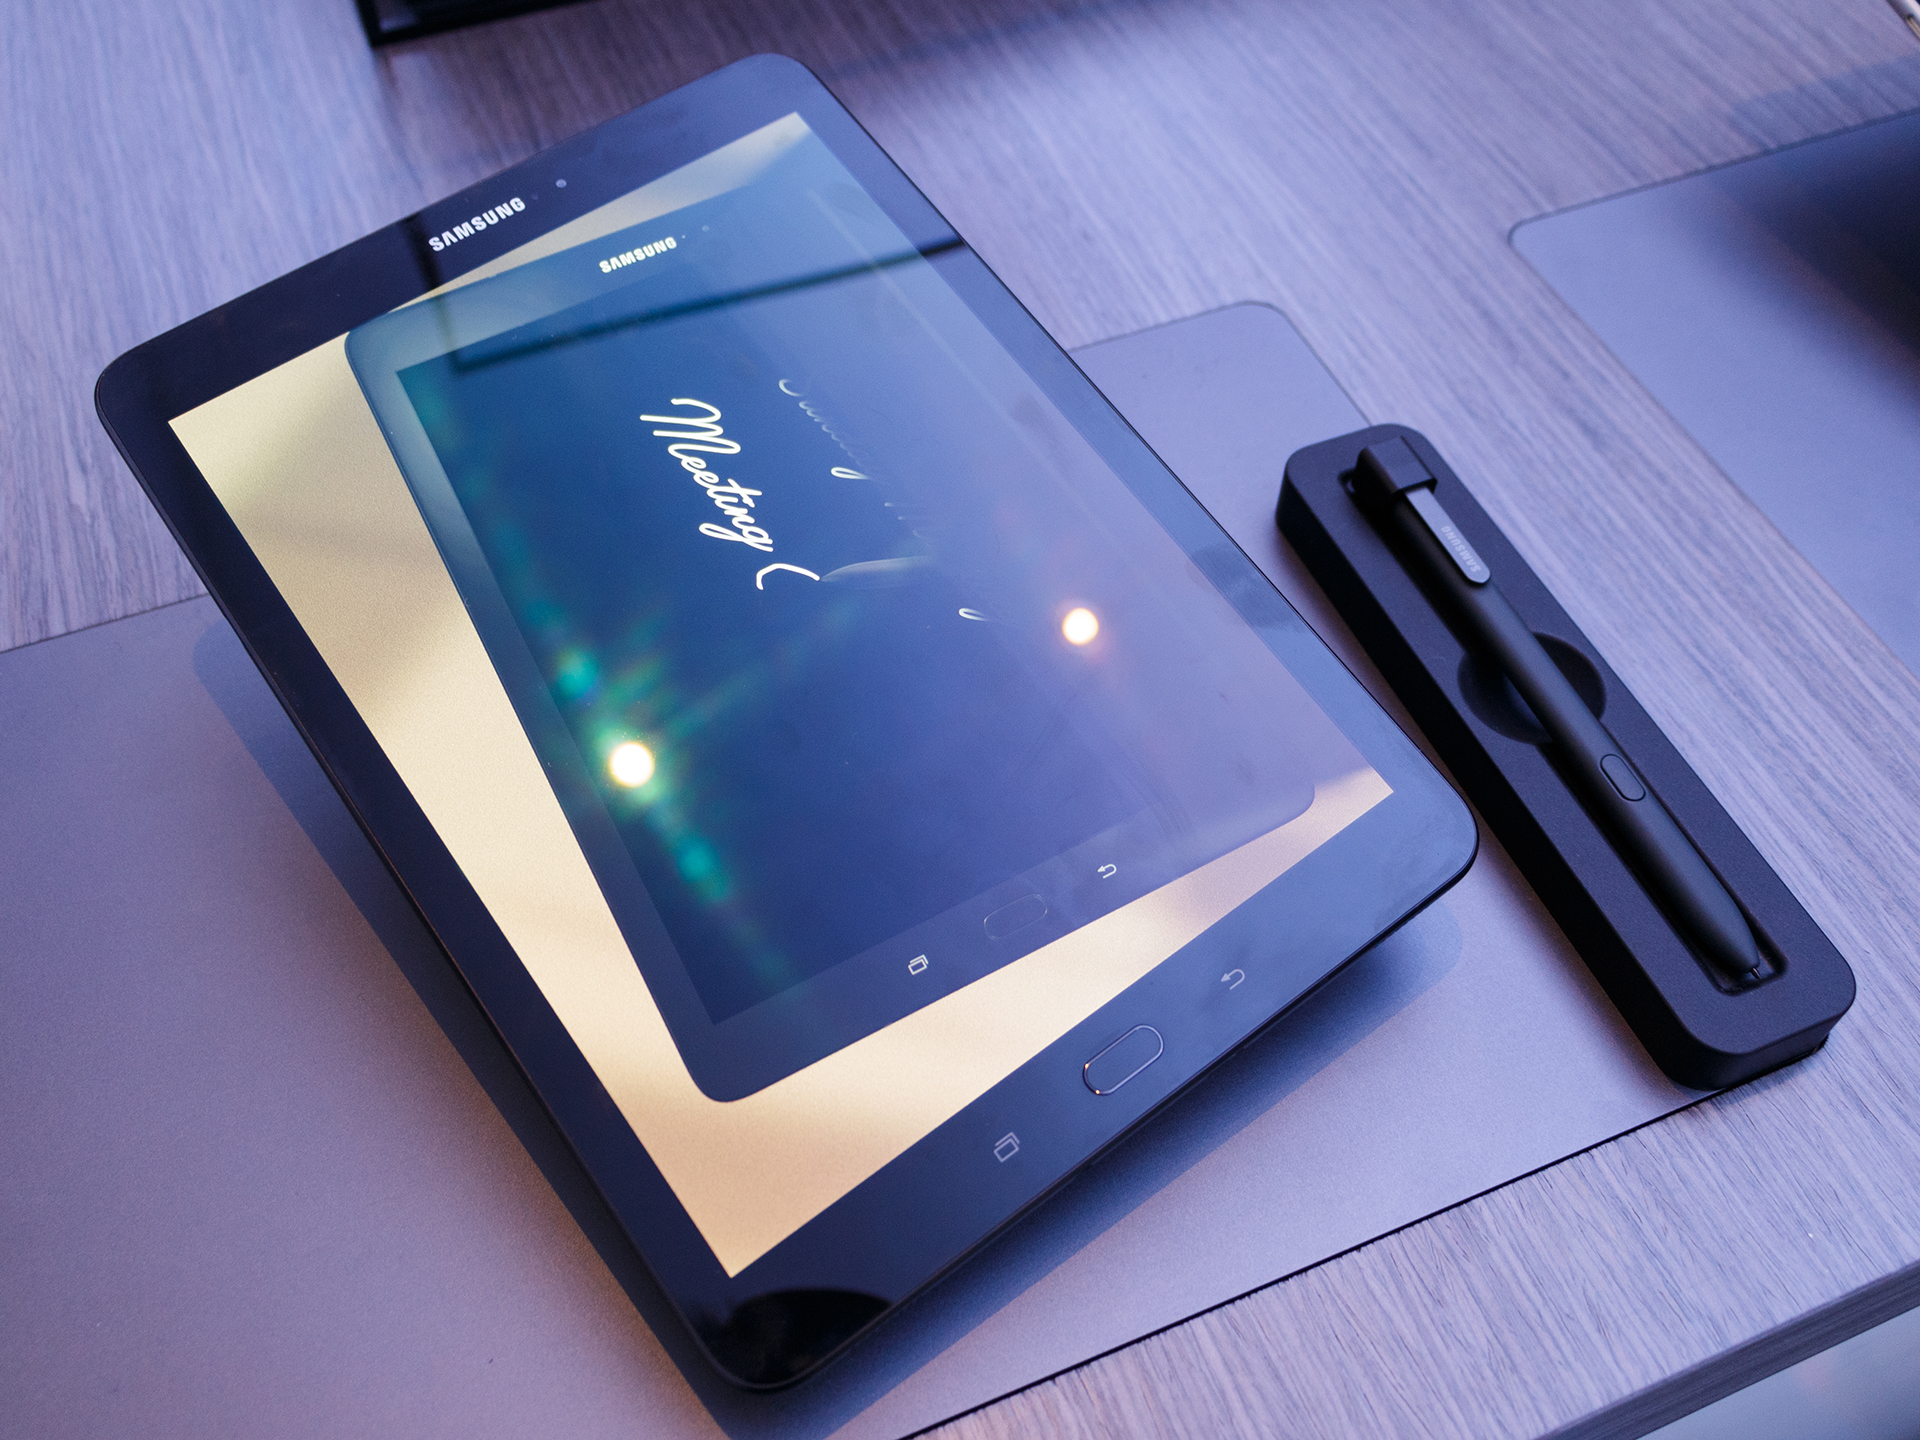 Samsung Tab S3 Samsung Galaxy Tab S3 Tablet Review Notebookcheck